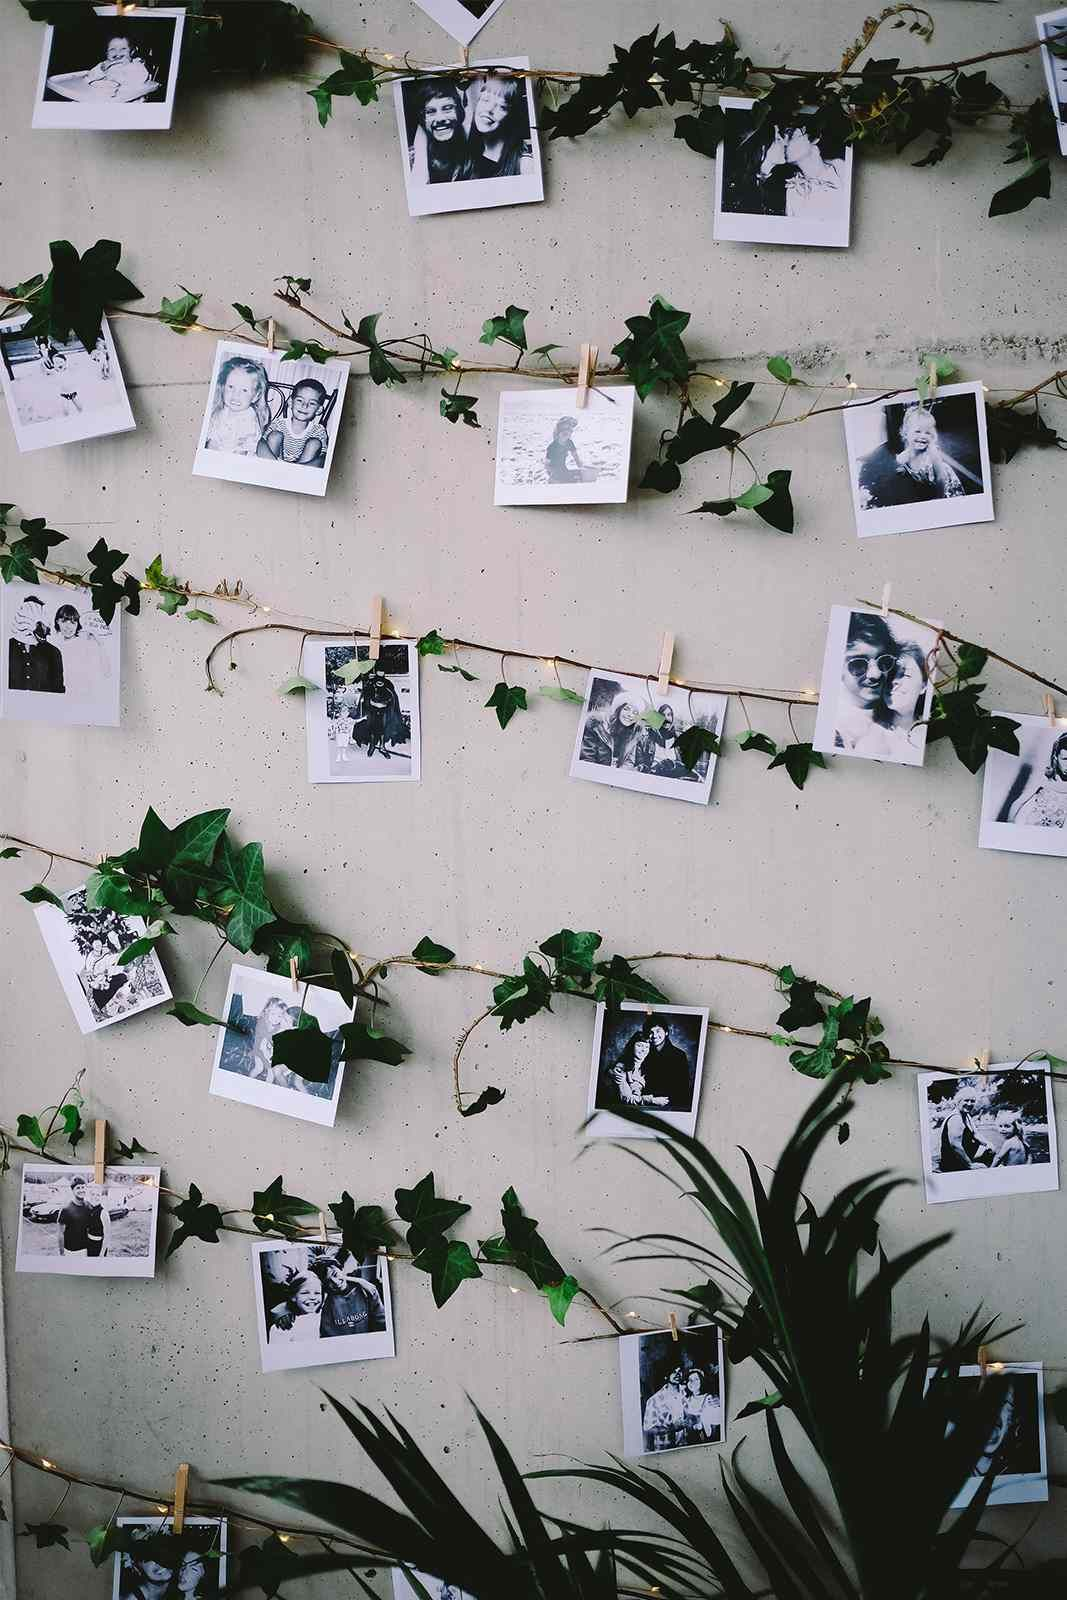 75 Unique Wedding Ideas to Wow Your Guests